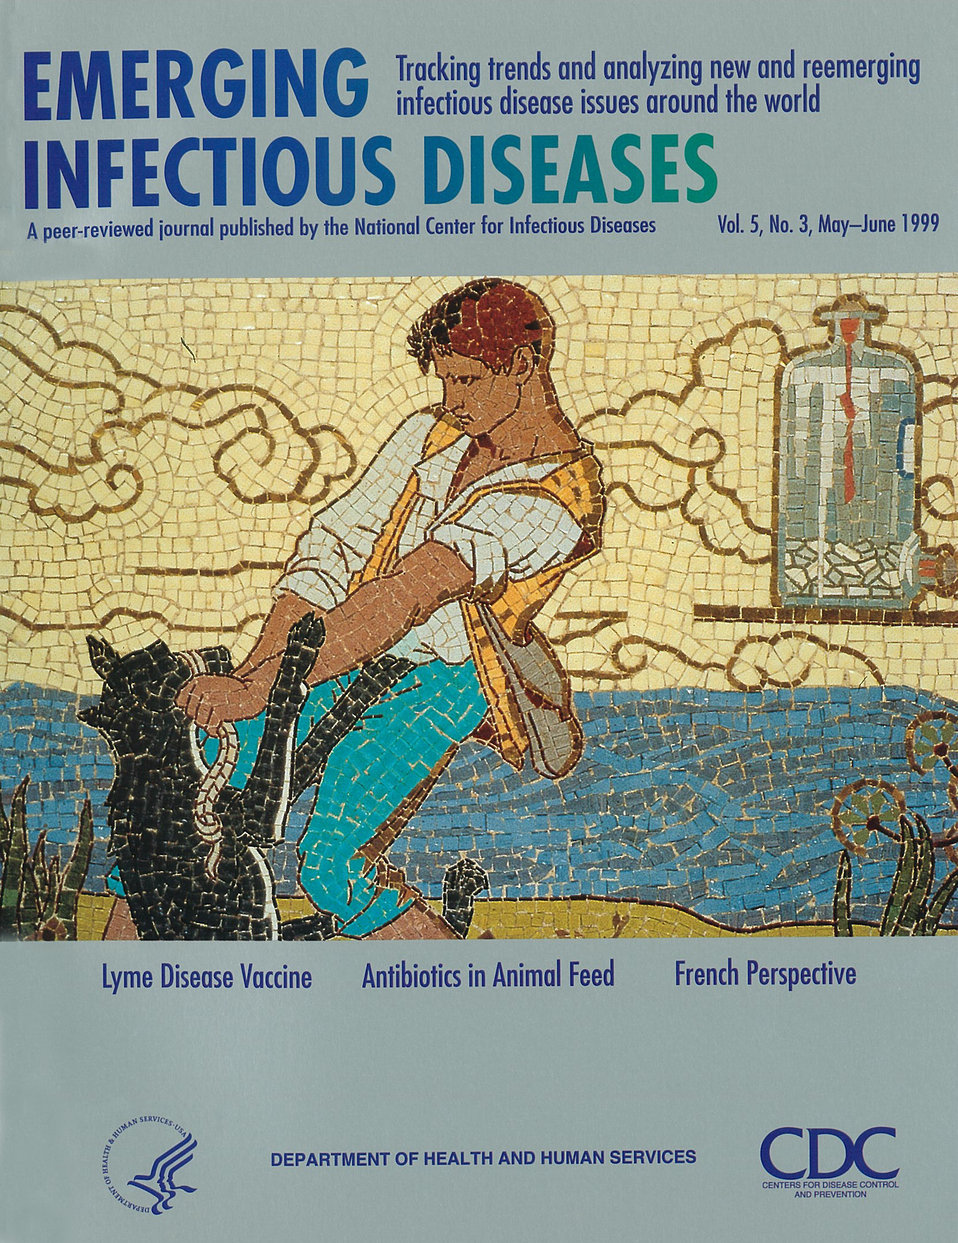 Emerging Infectious Diseases (EID) cover artwork for Volume 5, Number 3, May-June 1999 issue.